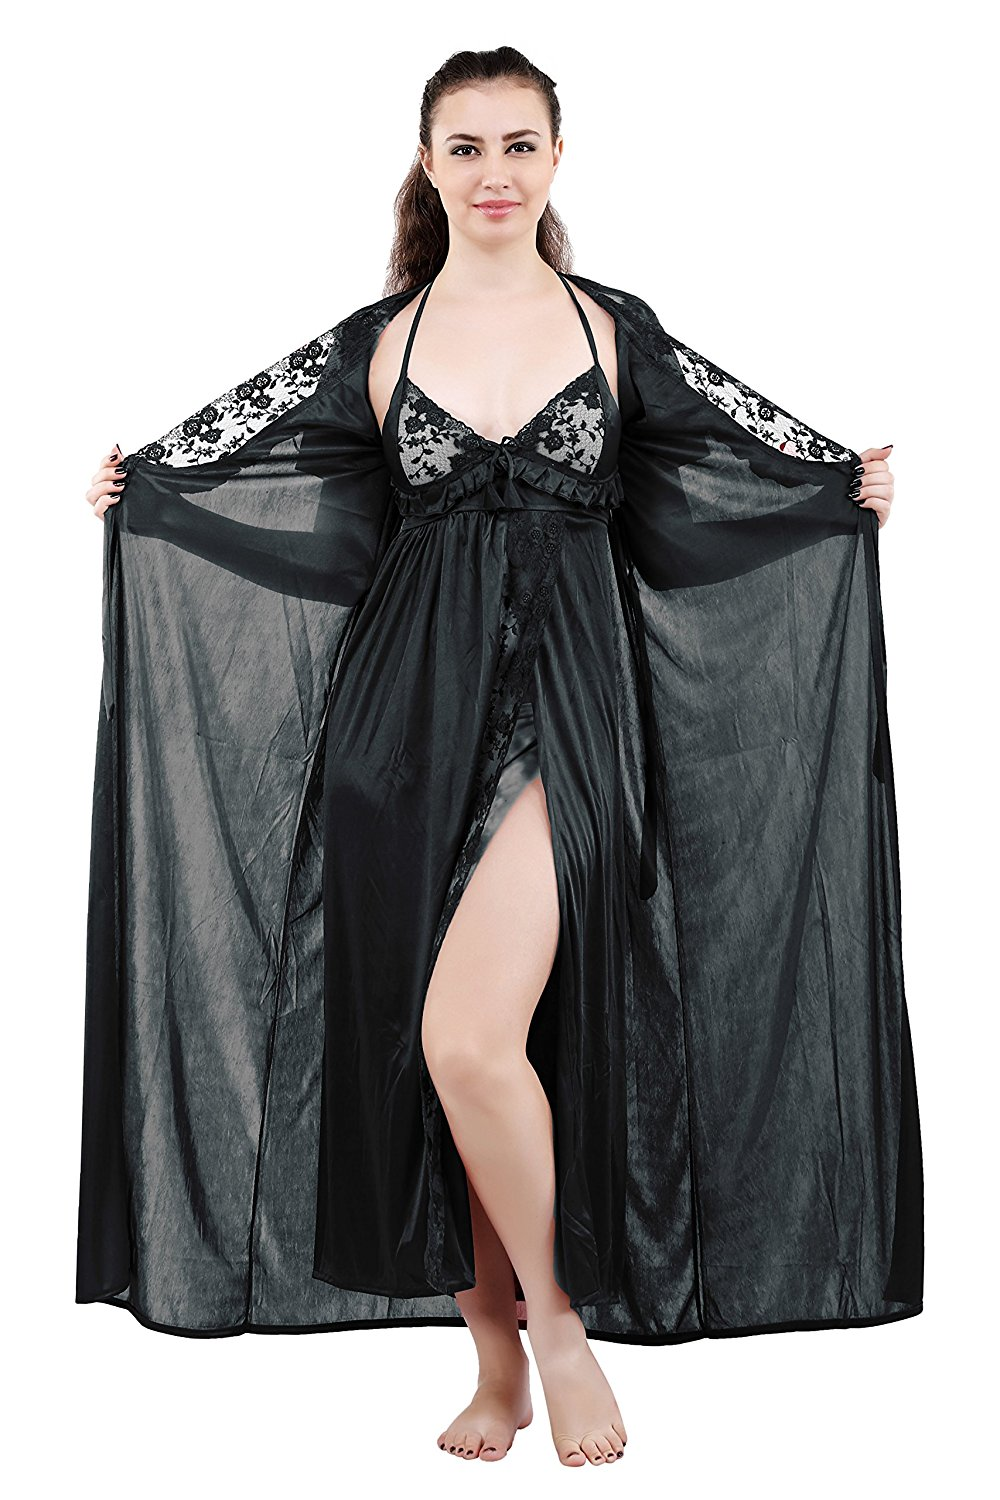 /post-images/images/Romaisa-Womens-Lace-Nightdress-Black_Free.jpg